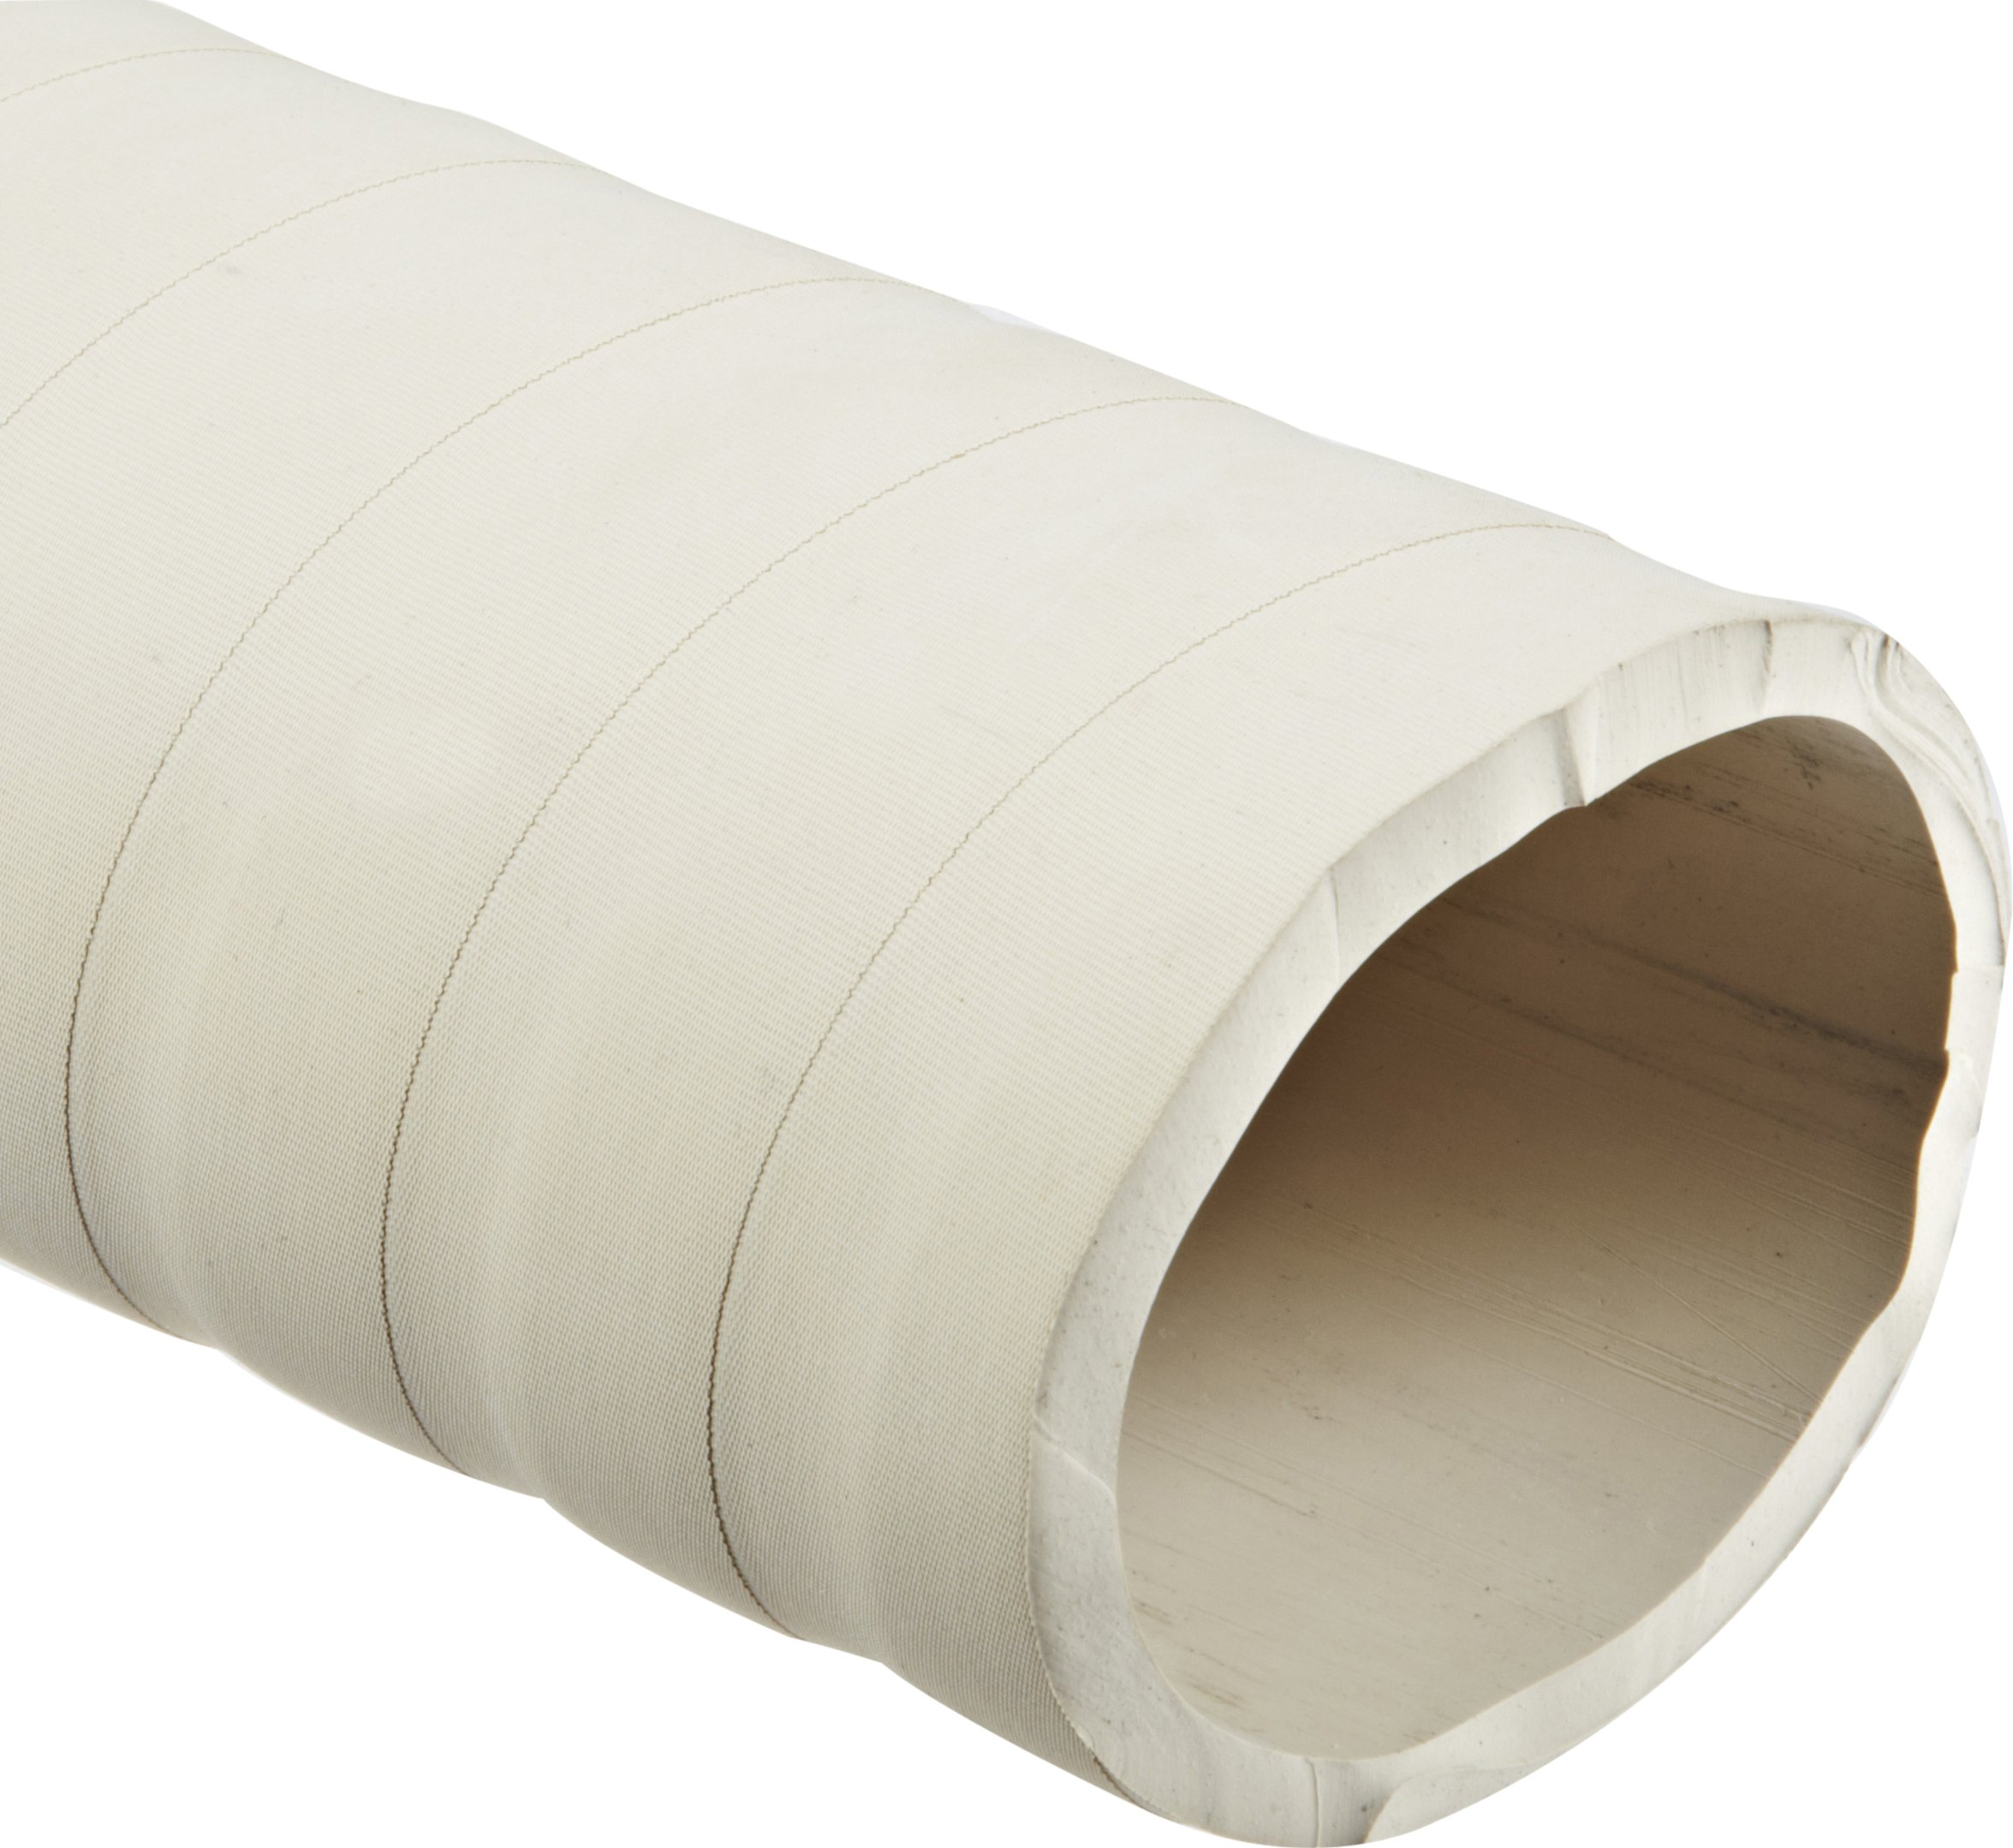 Abrasion-Resistant Gum Rubber Tubing, Very Flexible, Tan, Opaque, 45A Durometer, 1-1/4'' ID, 1-3/4'' OD, 1/4'' Wall, 50' Length